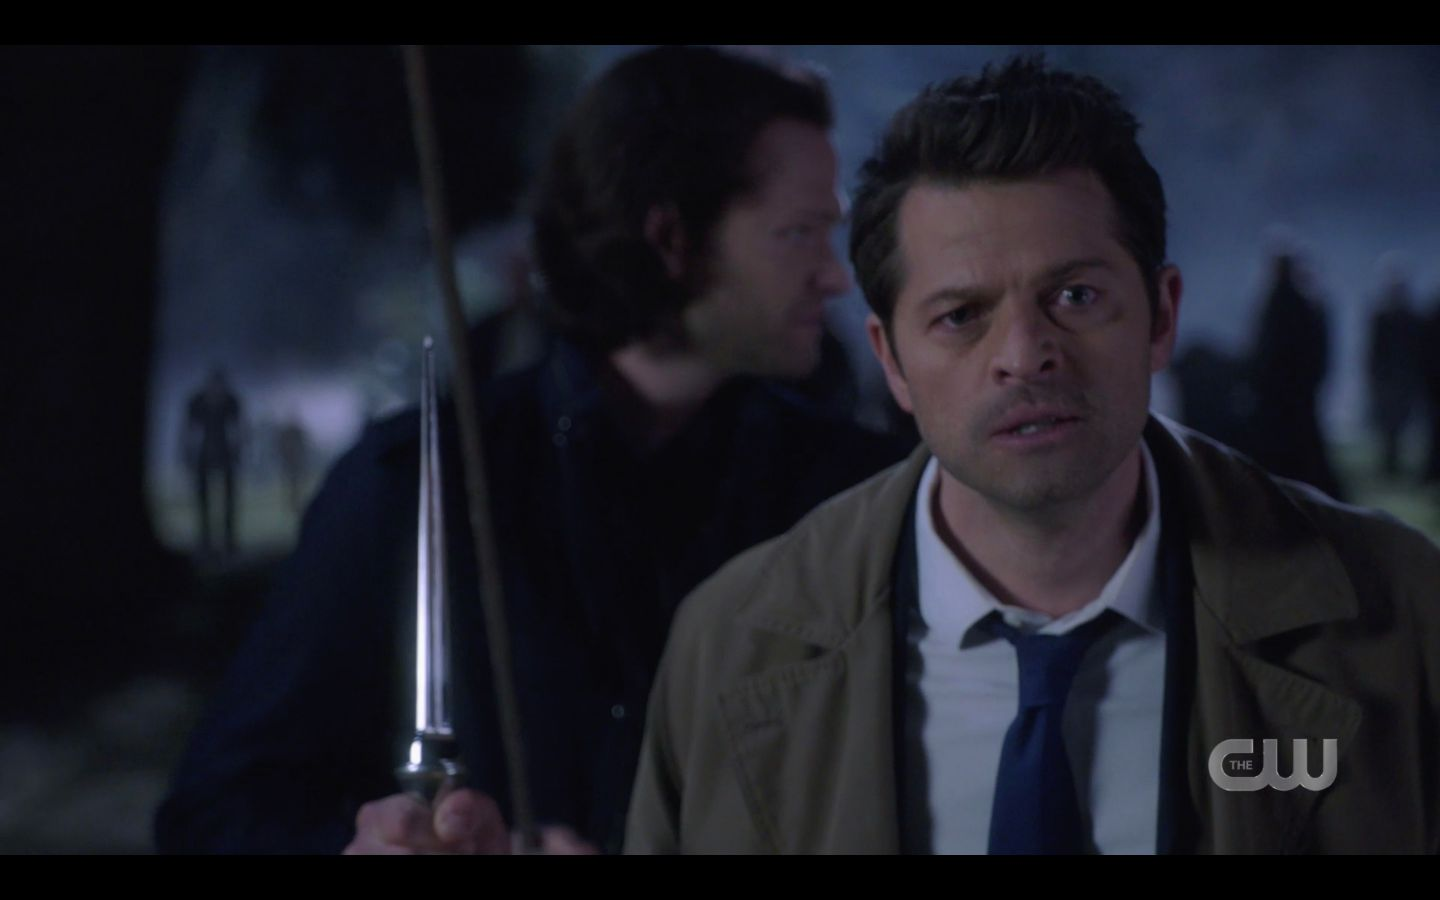 Castiel with Sam Winchester stake ready for zombie horde battle SPN 14.20